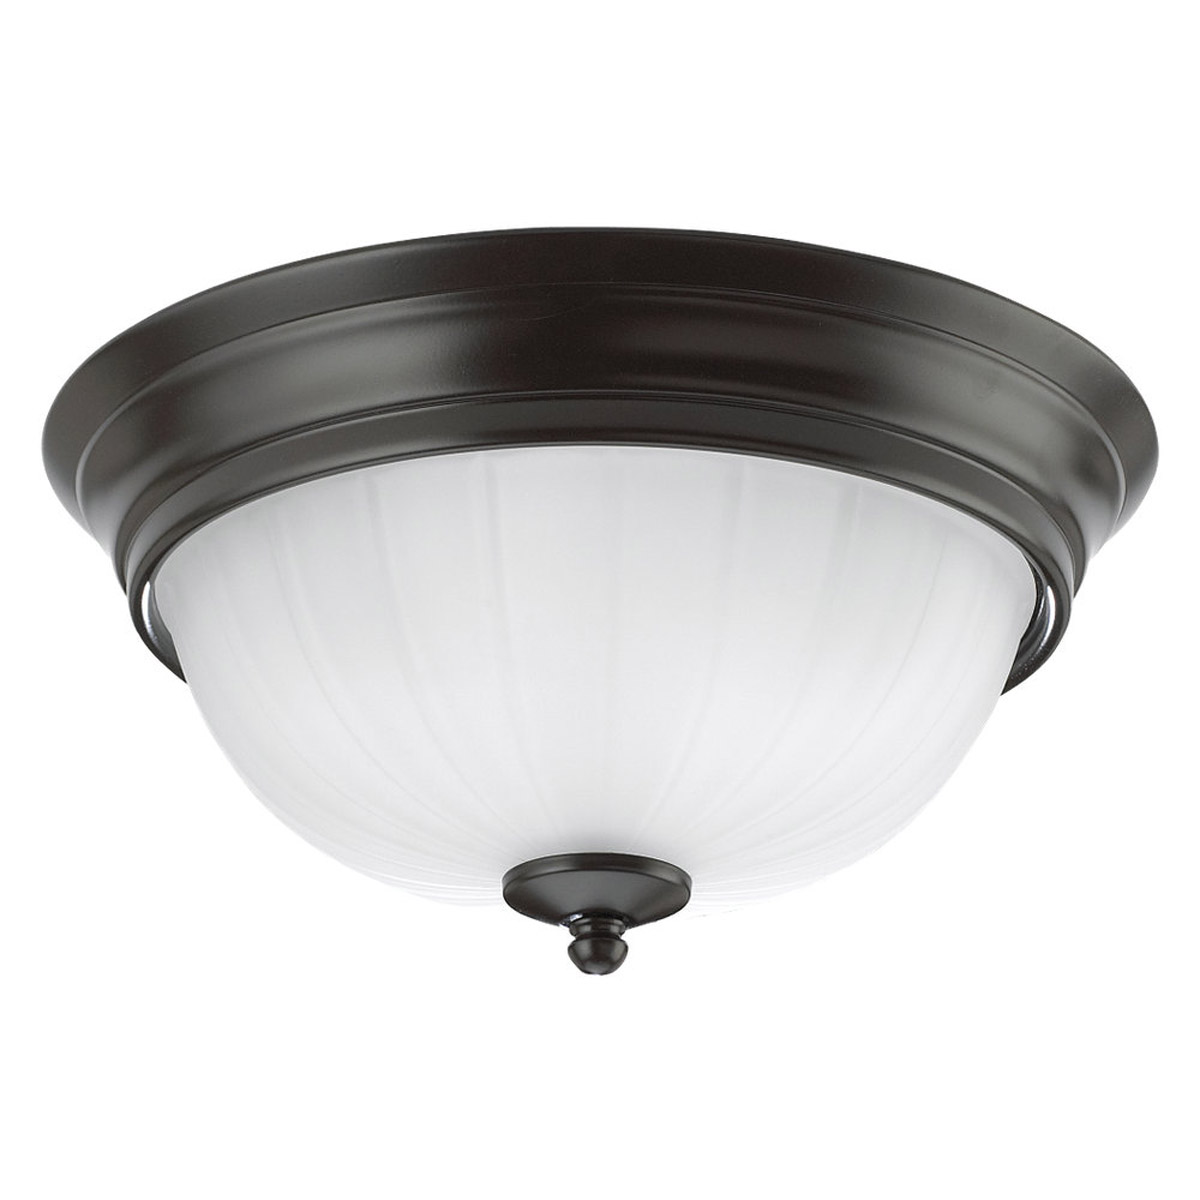 Sea Gull Lighting Linwood 2 Light Flush Mount in Heirloom Bronze 7505-782 photo